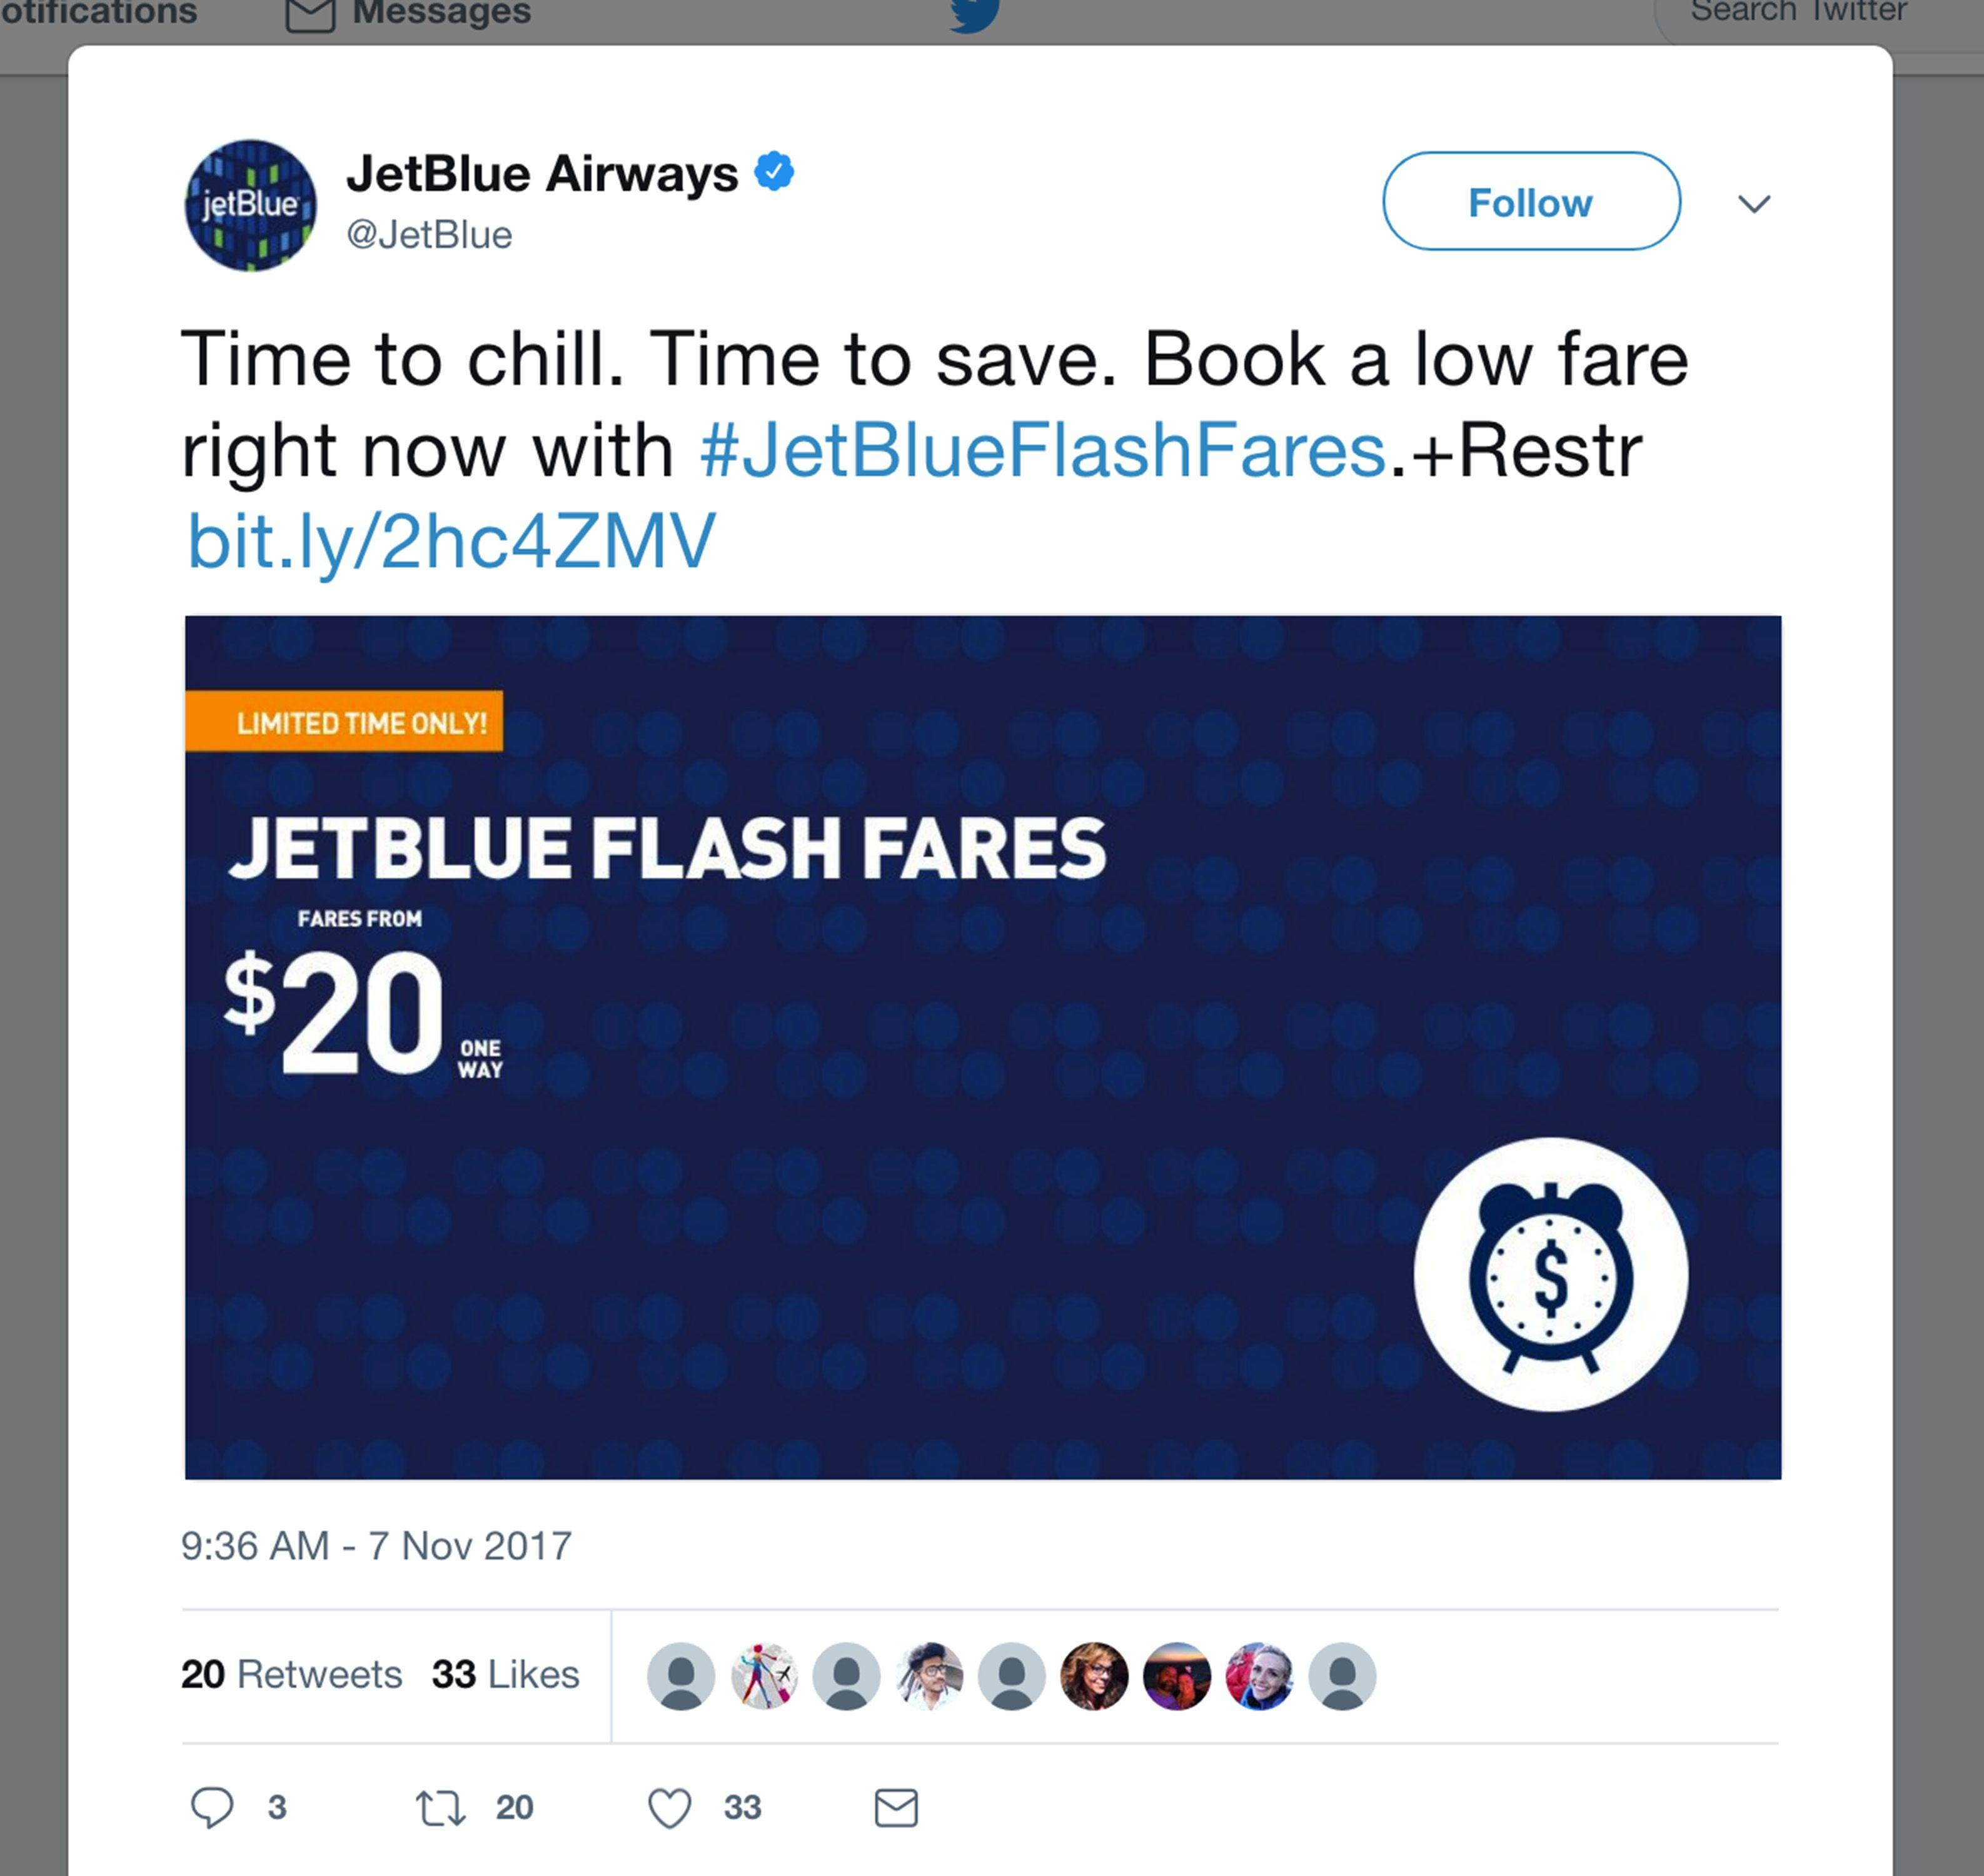 Travelers love airline flash sales but the ultra-cheap fares